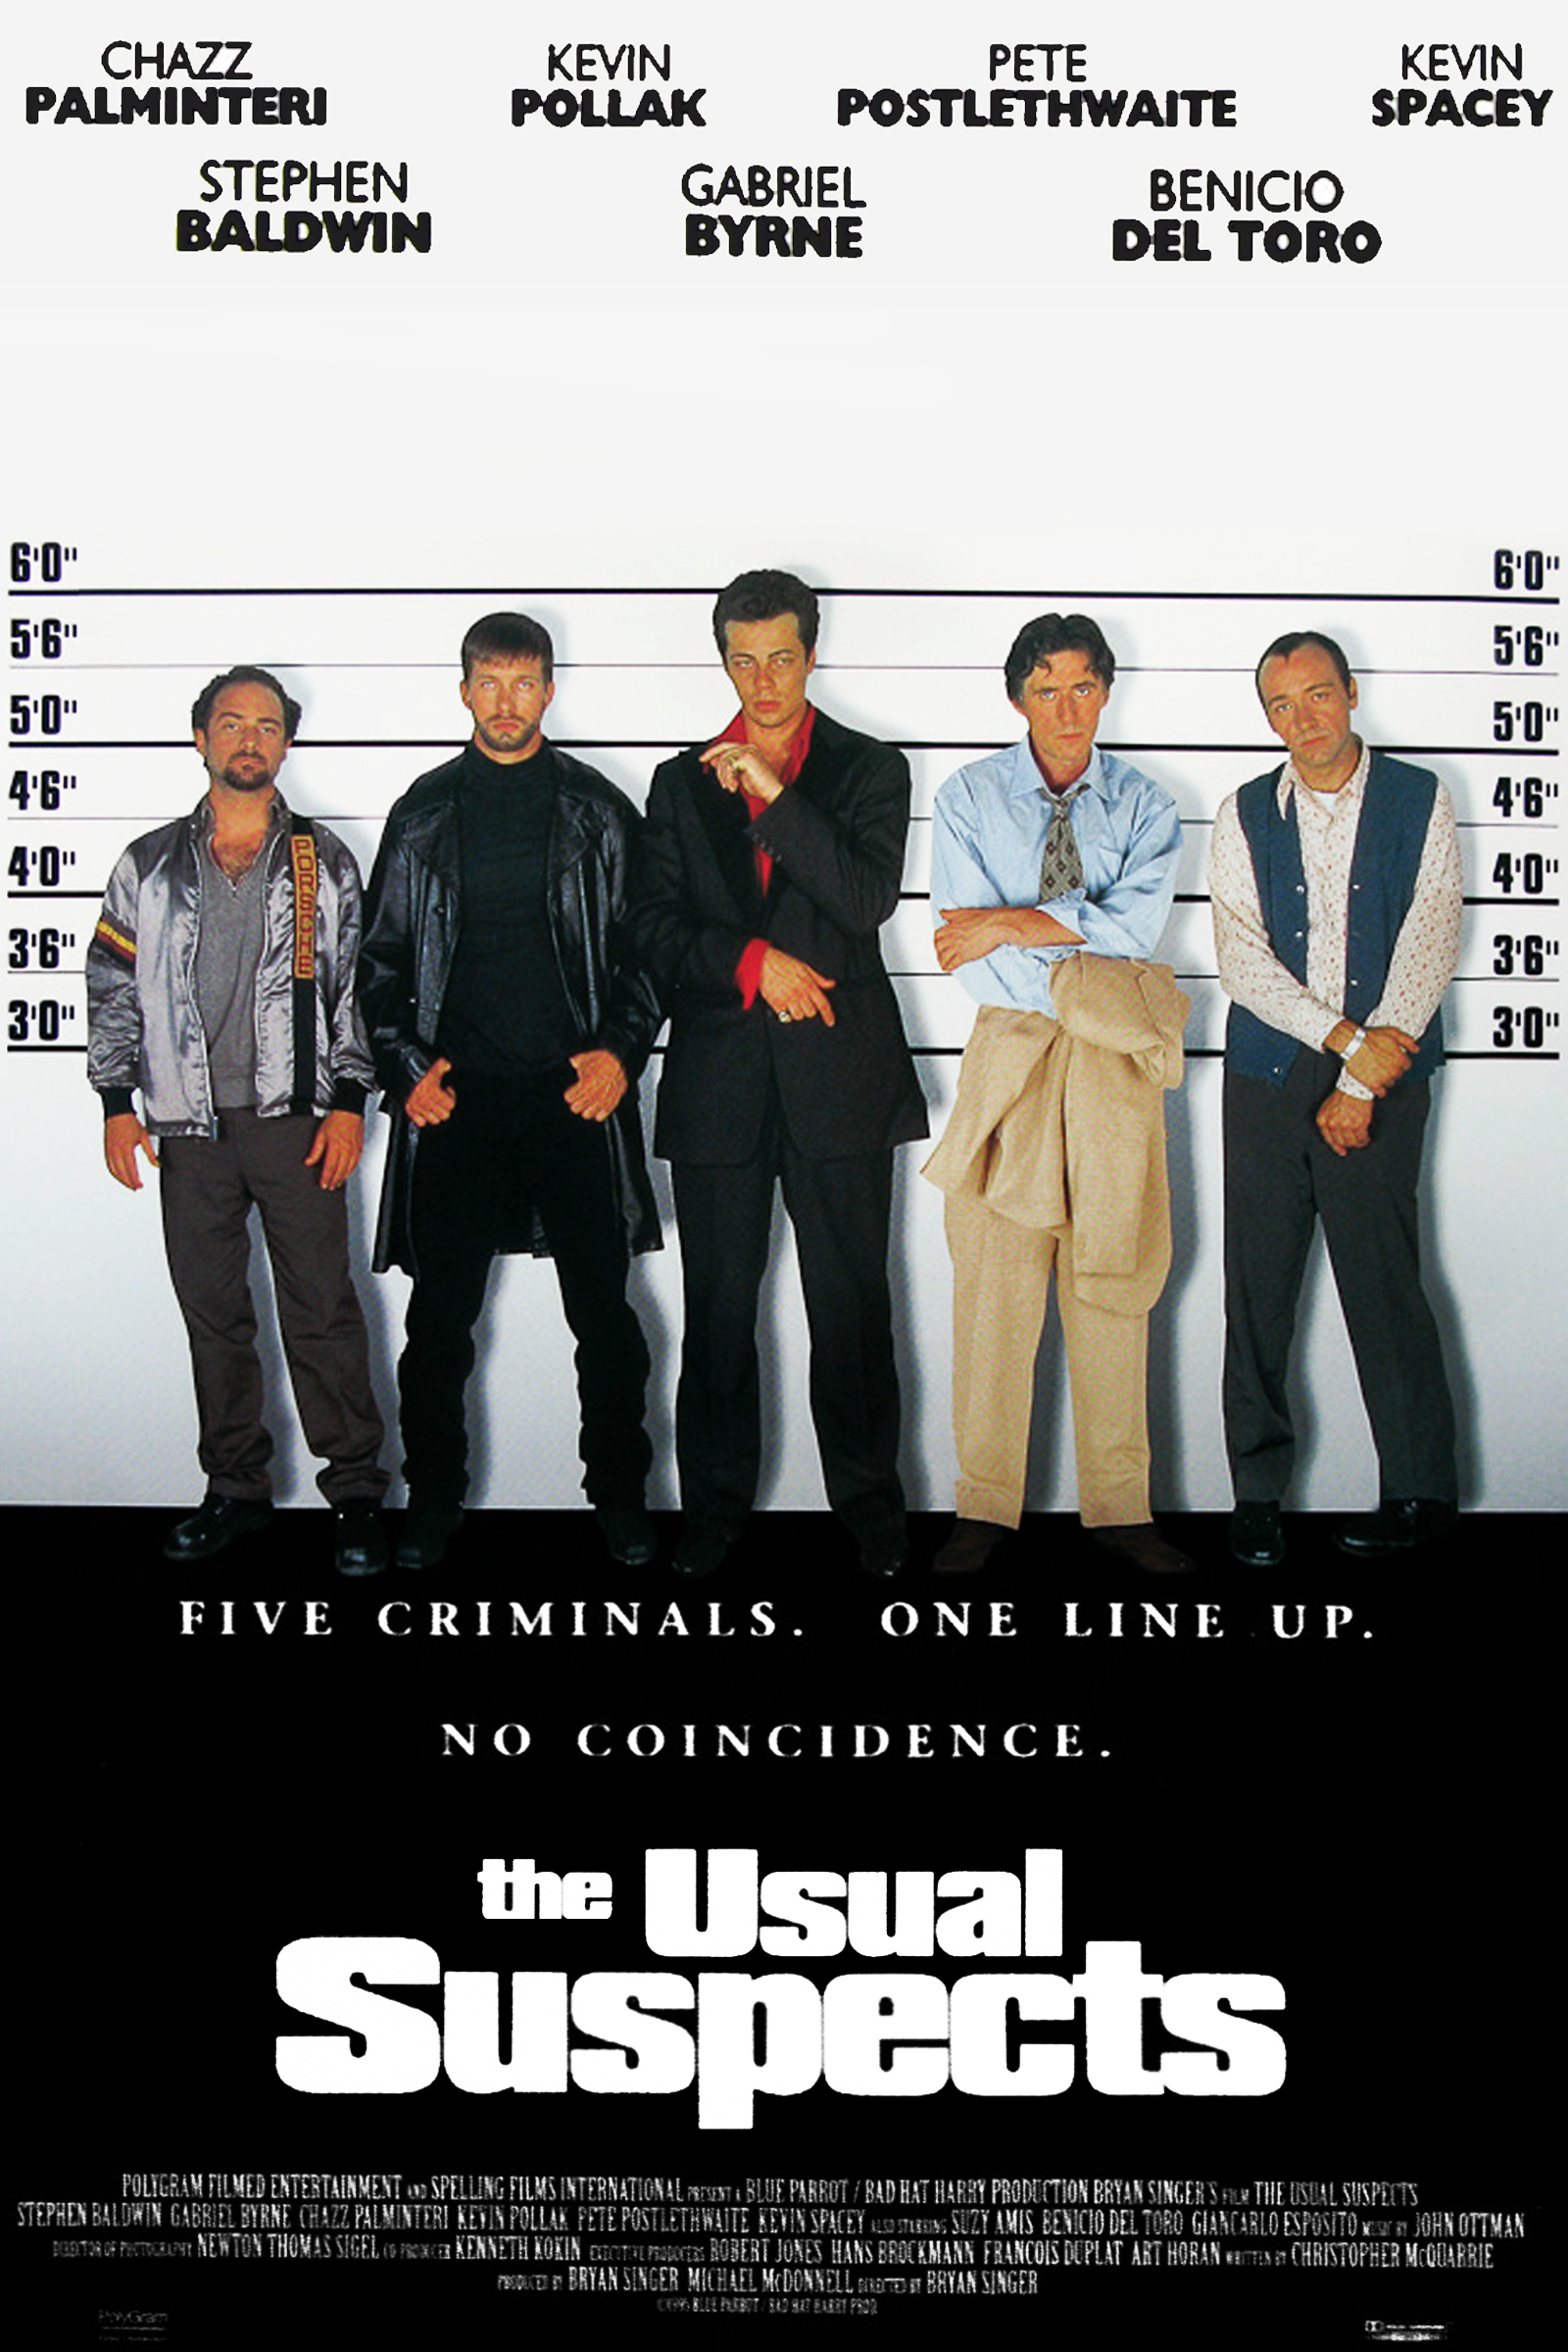 the usual suspects The 27 Best Film Ensembles: From Boogie Nights to Spring Breakers